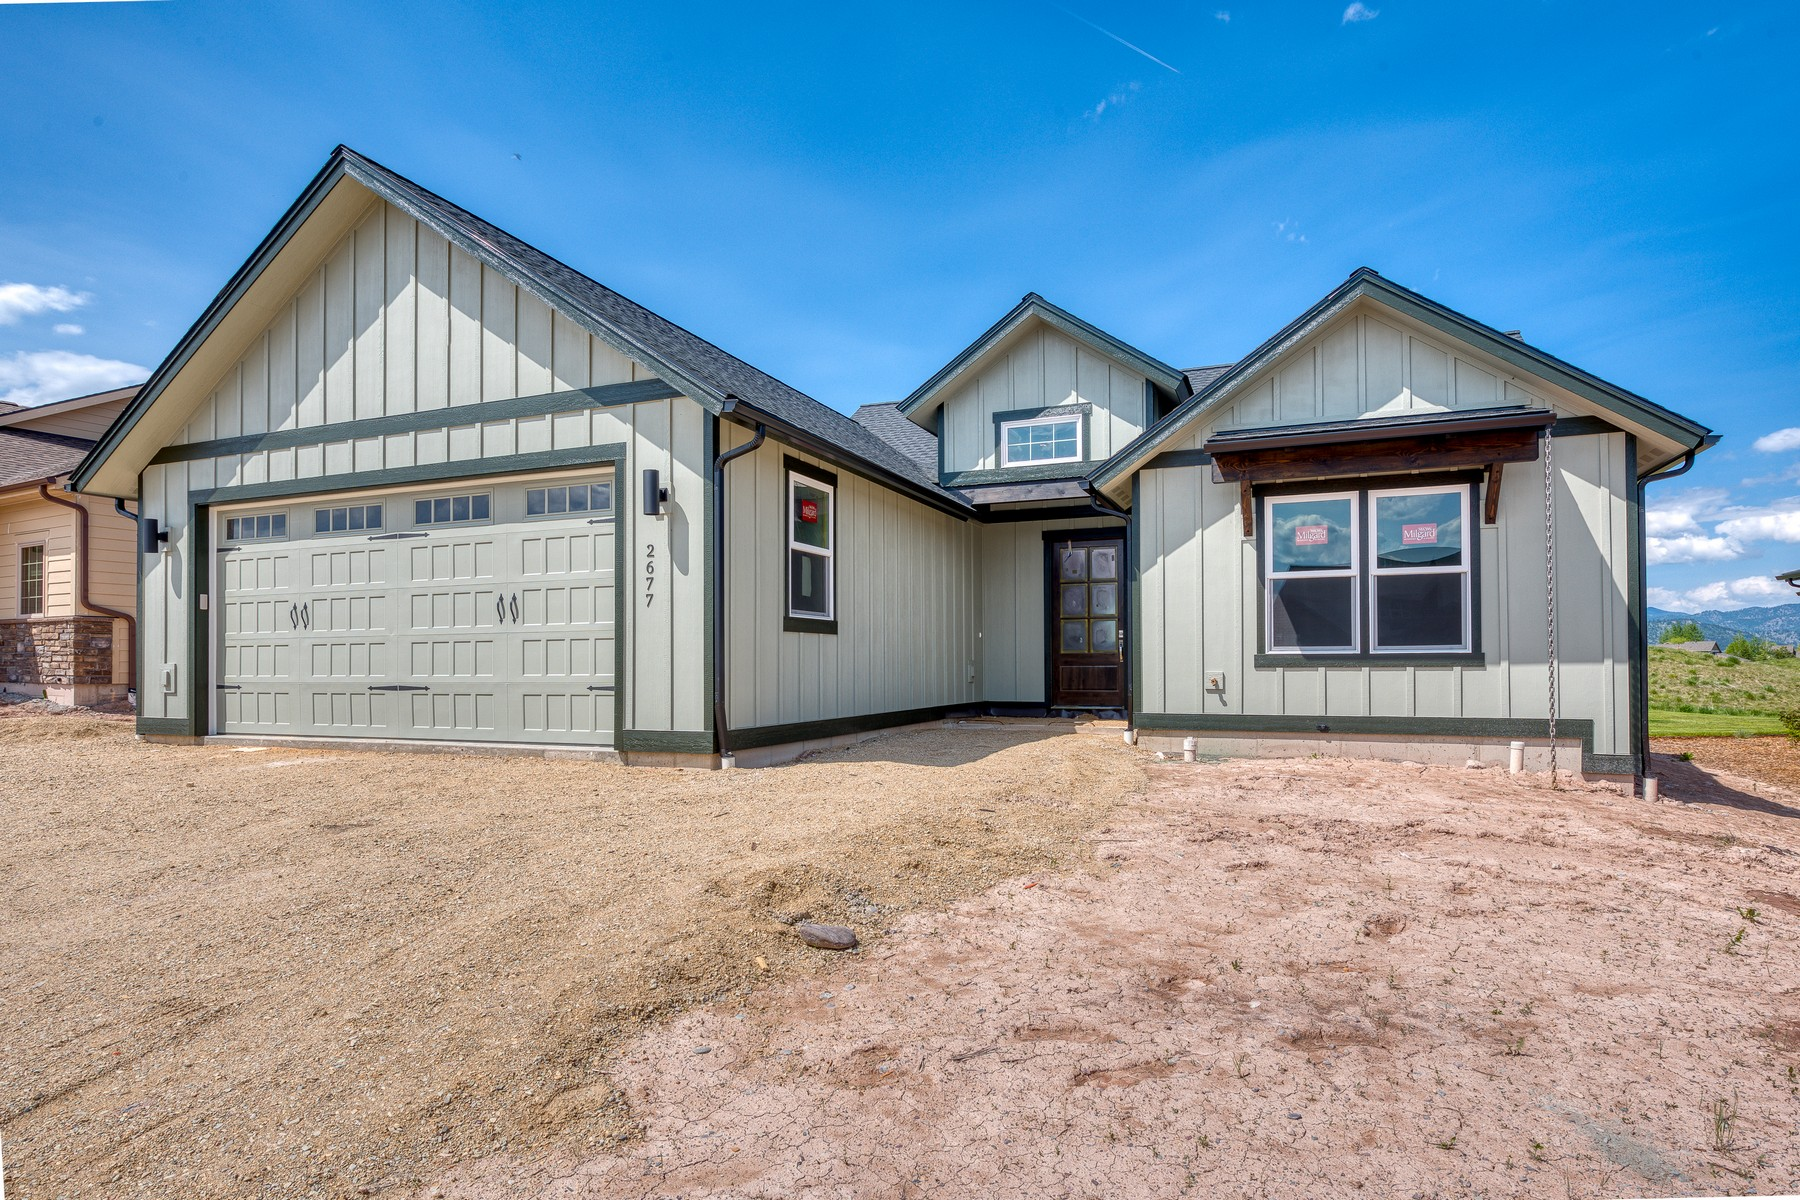 Single Family Homes for Sale at 2677 Bunkhouse Place Missoula, Montana 59808 United States